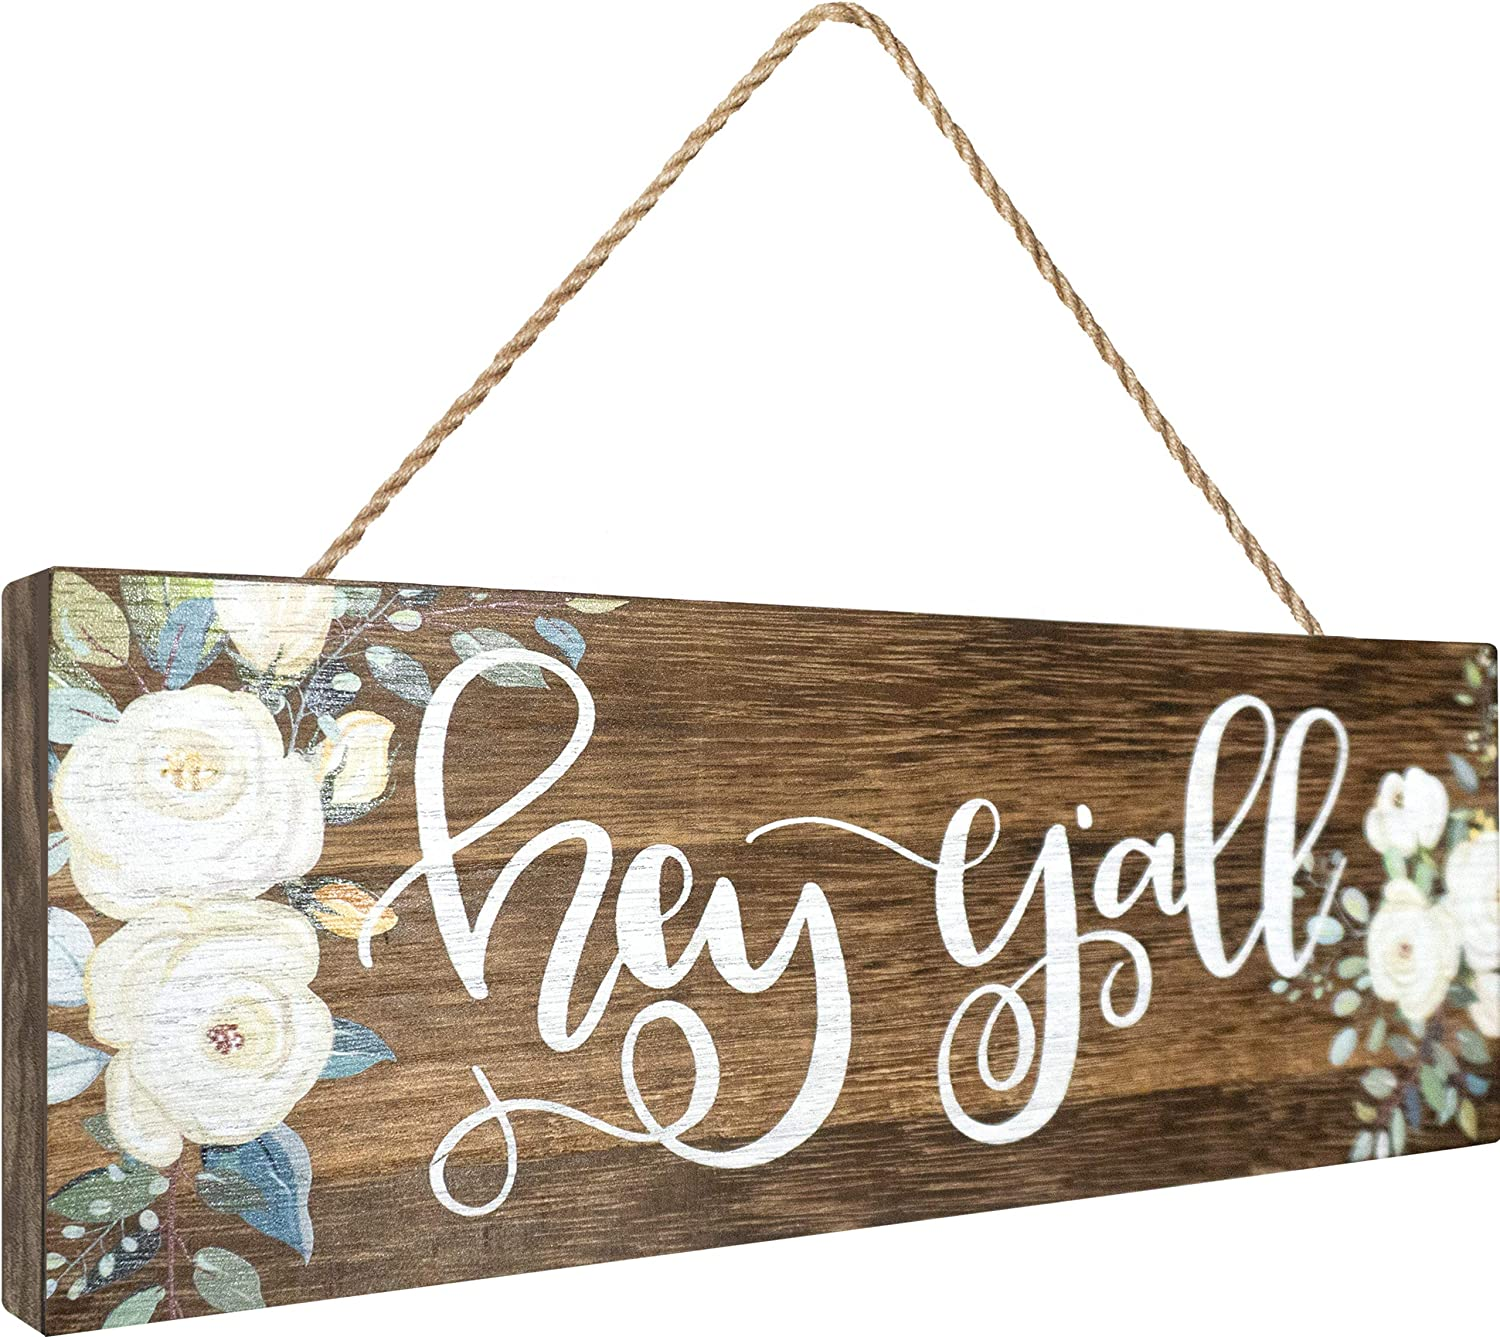 Apanda Wooden Hey Y'all Sign Wall Hanger, Magnolia Welcome Hello Sign Home Outdoor Wooden Wall Decor for Front Door Kitchen